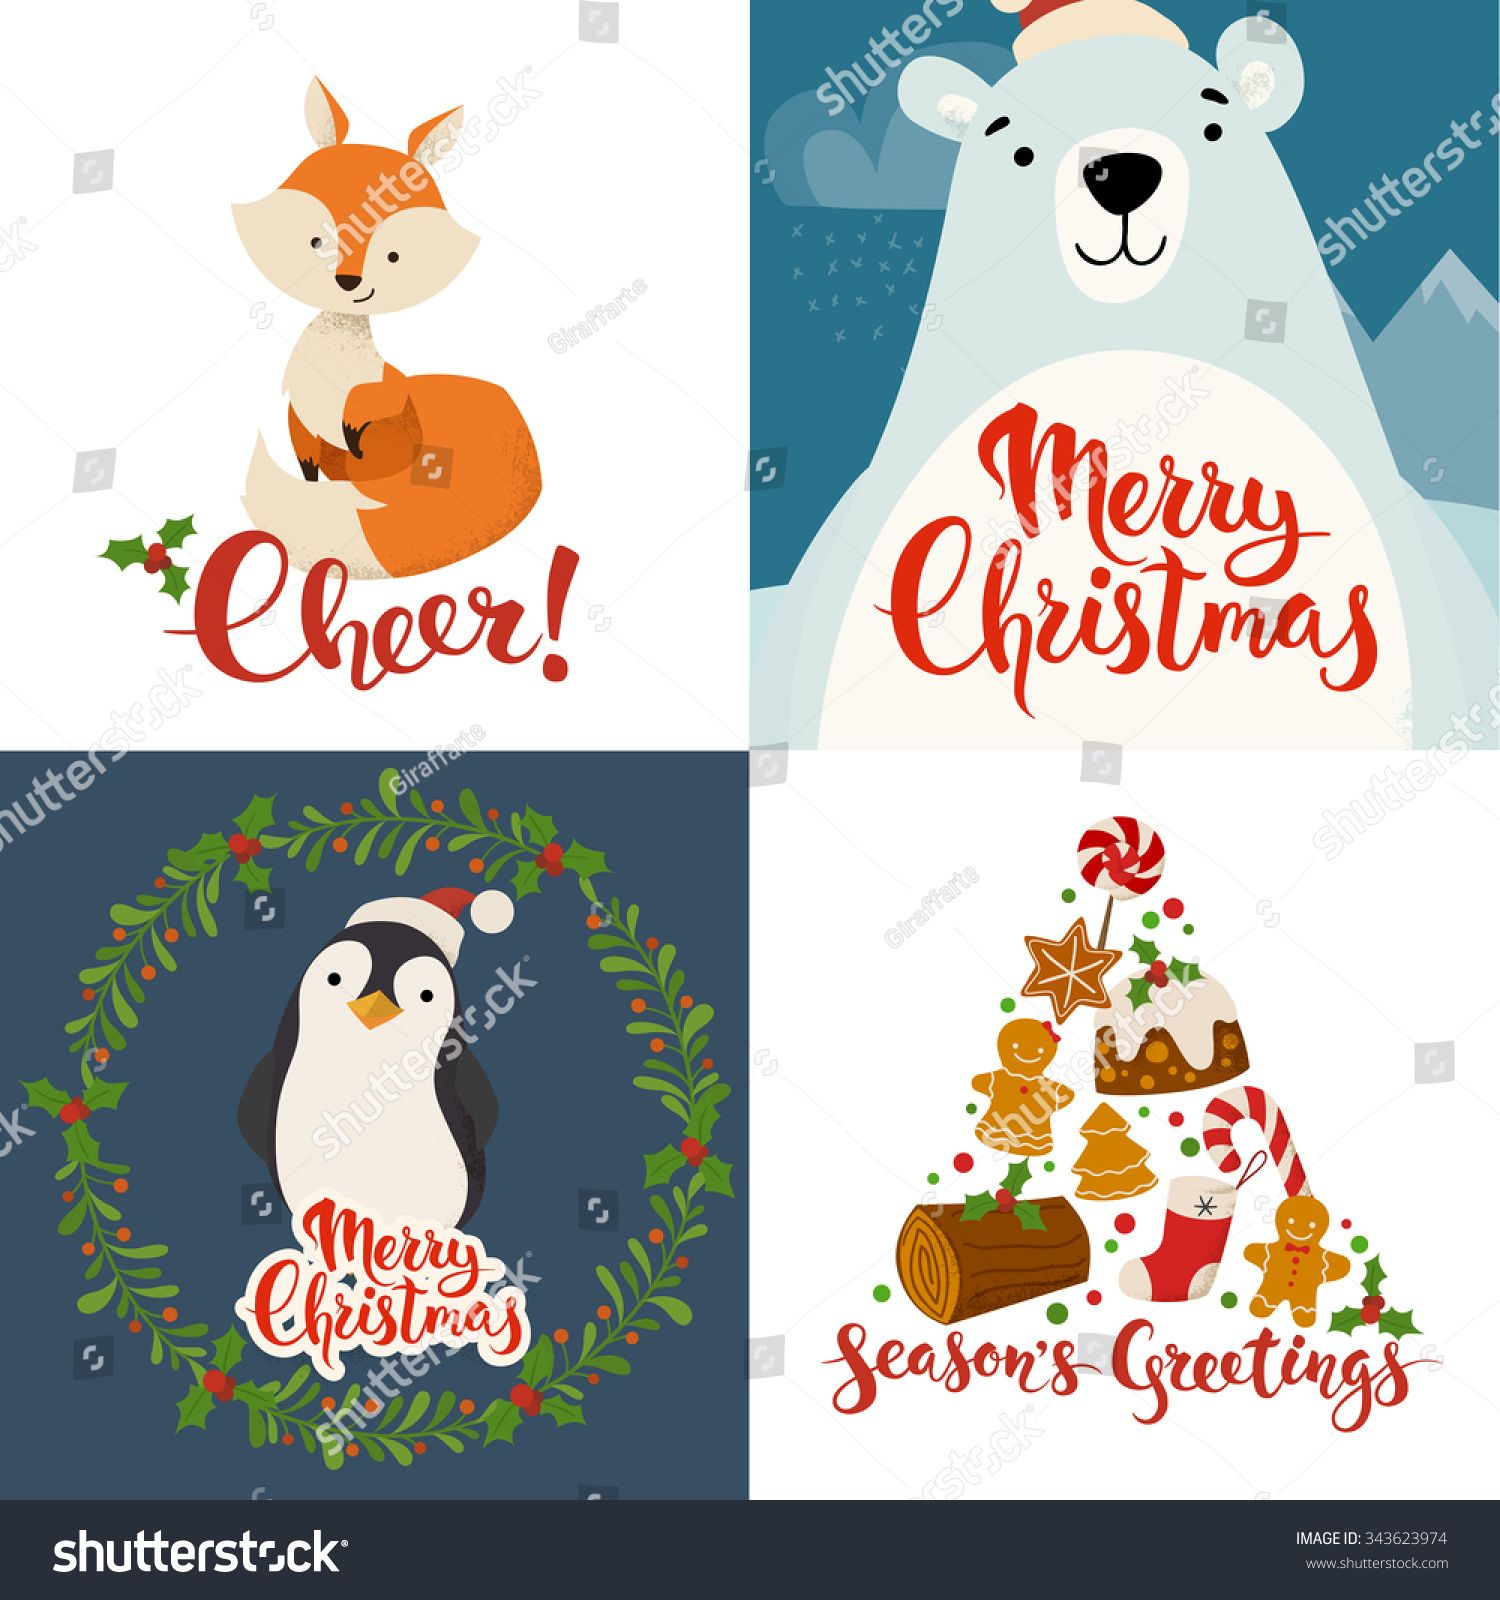 Merry Christmas Vector Cards With Funny Christmas Characters